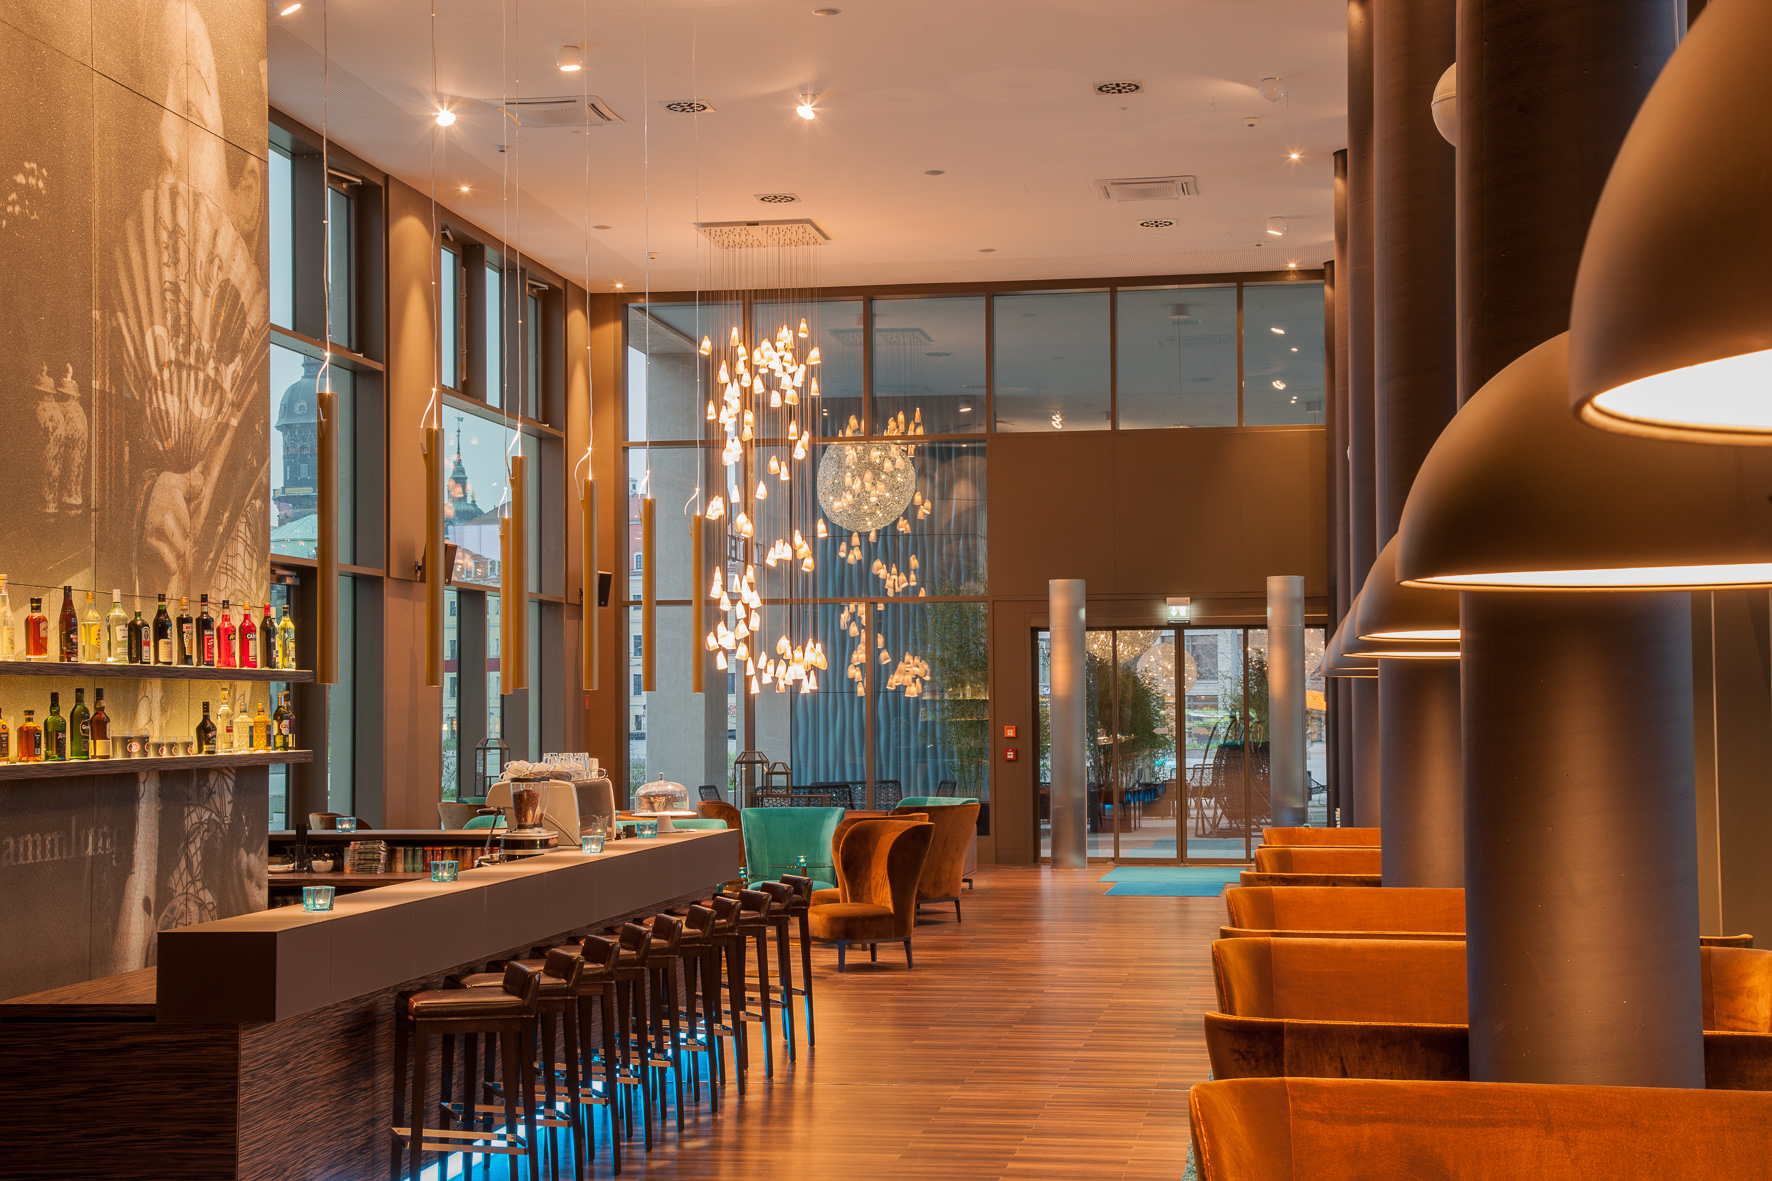 Hotel motel one dresden am zwinger hotels hotels for Design hotel dresden